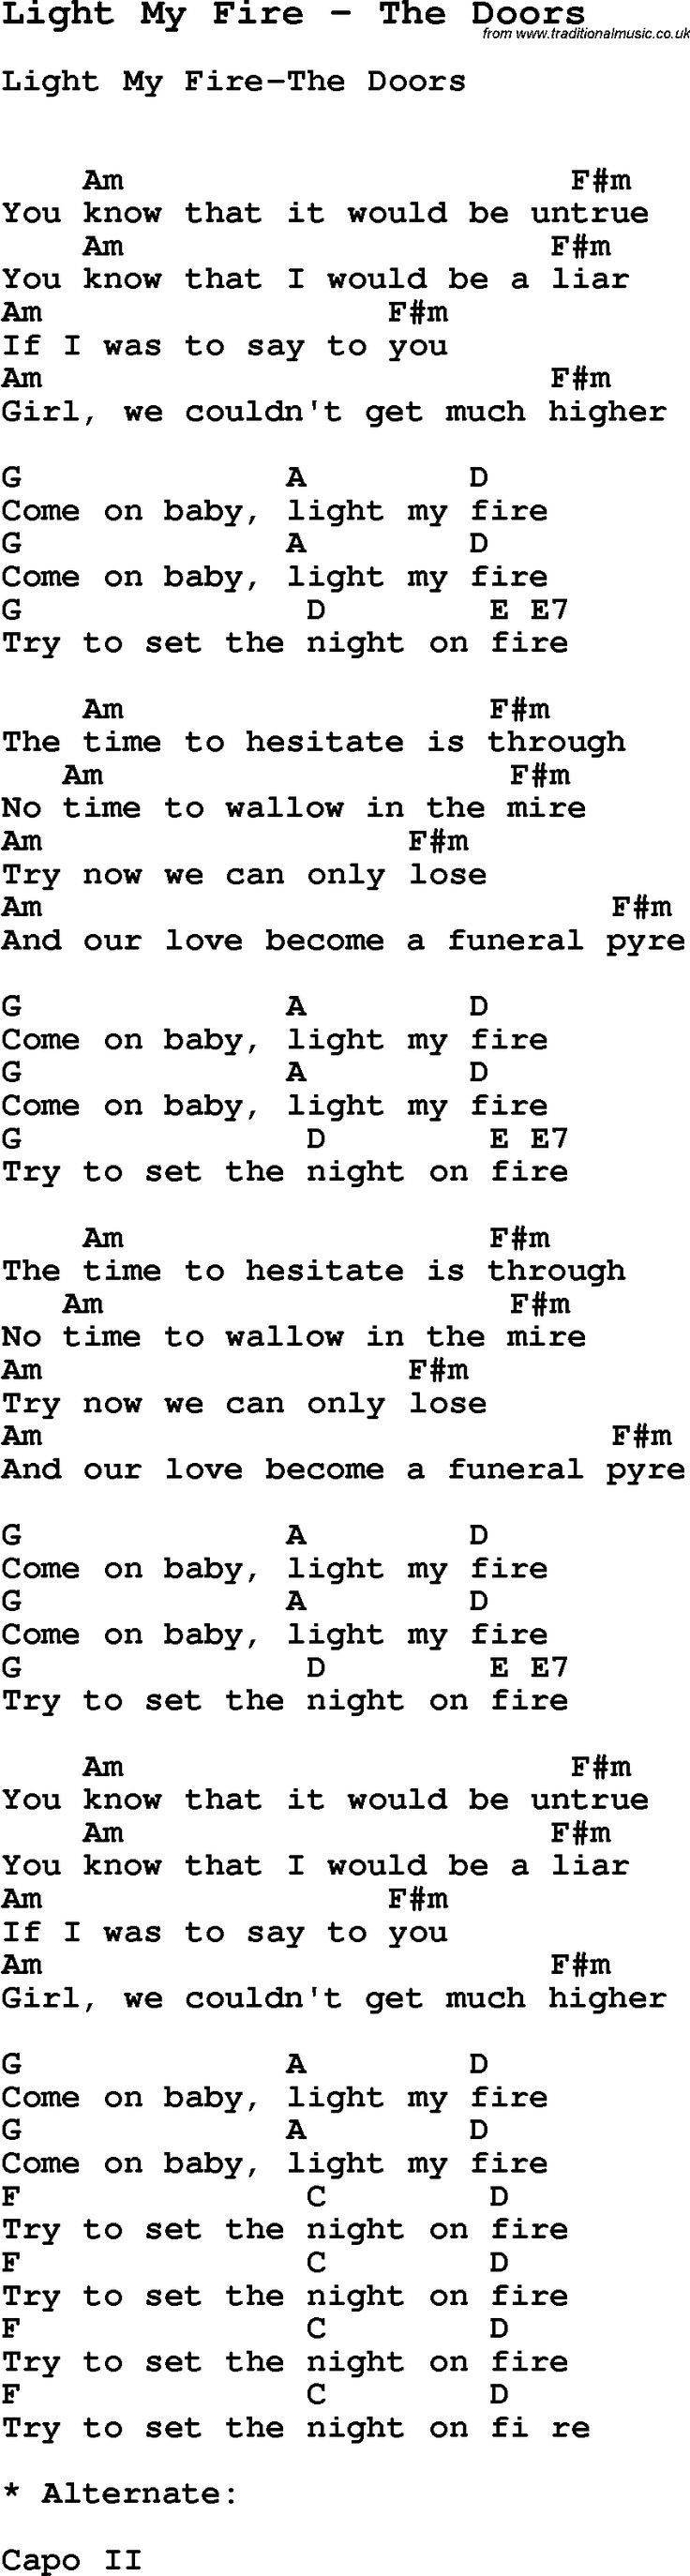 332 best guitar lyrics and chords images on pinterest guitar song light my fire by the doors with lyrics for vocal performance and accompaniment chords hexwebz Images